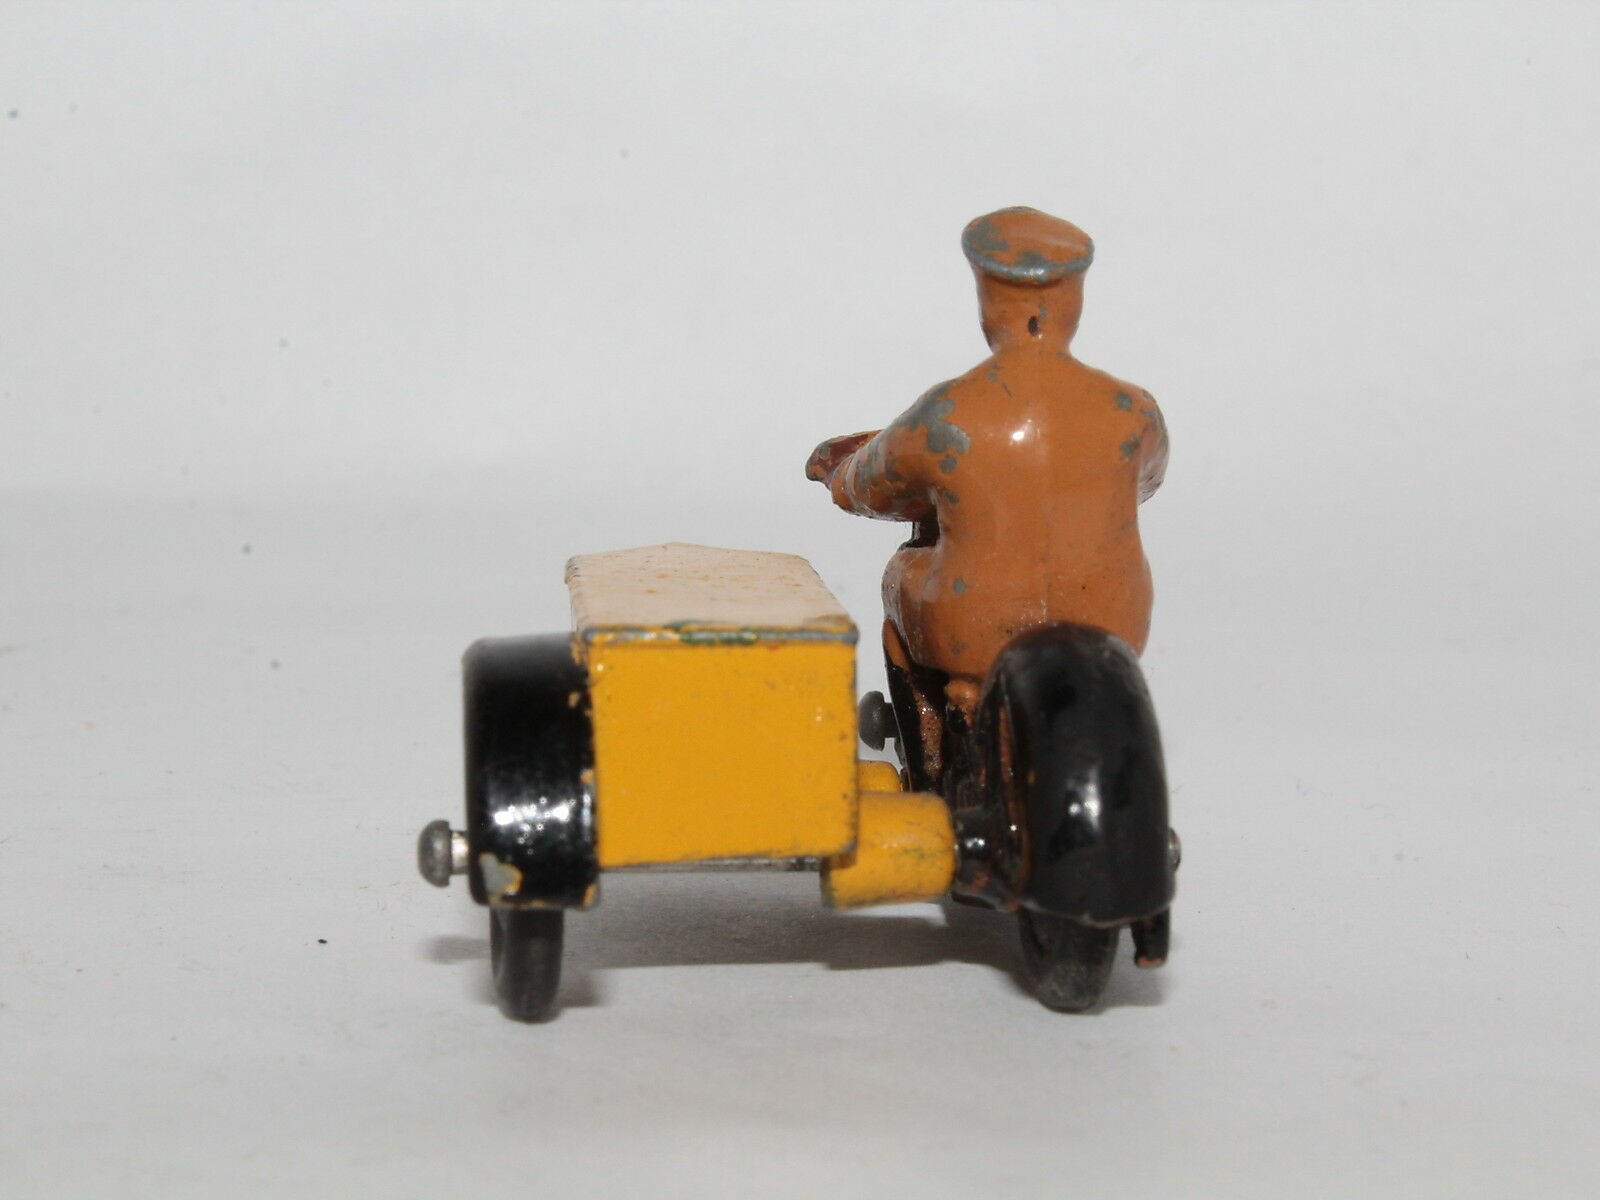 DINKY TOYS No. 44B 44 B MOTORCYCLE MOTORCYCLE MOTORCYCLE WITH SIDECAR PATROL - MECCANO LTD. [OS3-16] 04dcd4